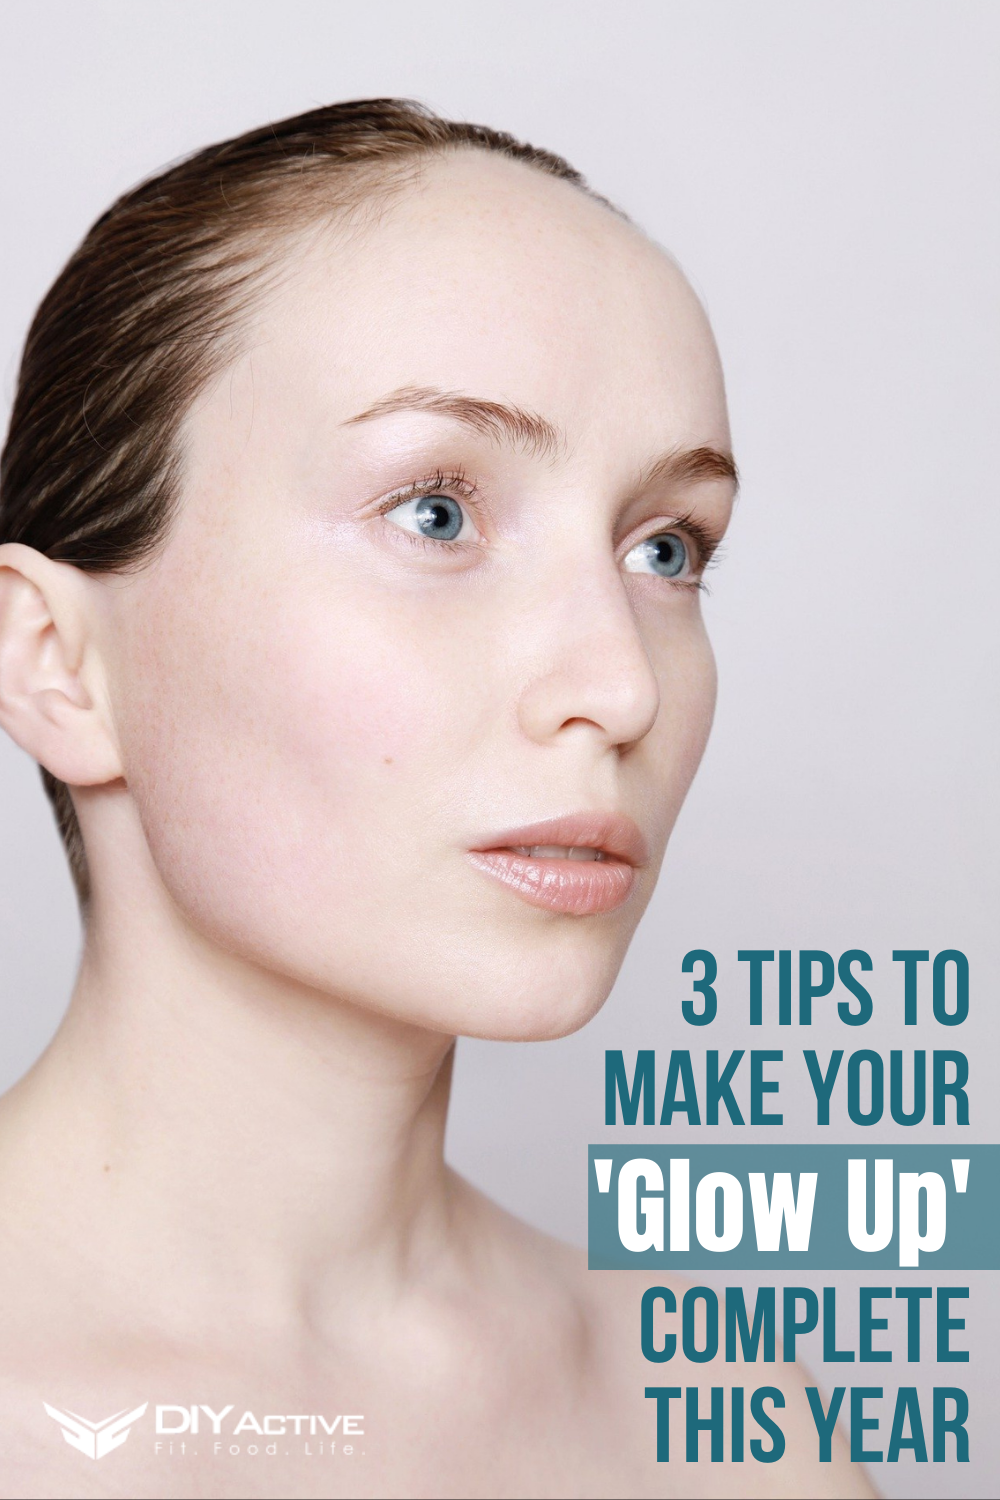 3 Tips To Make Your 'Glow Up' Complete This Year